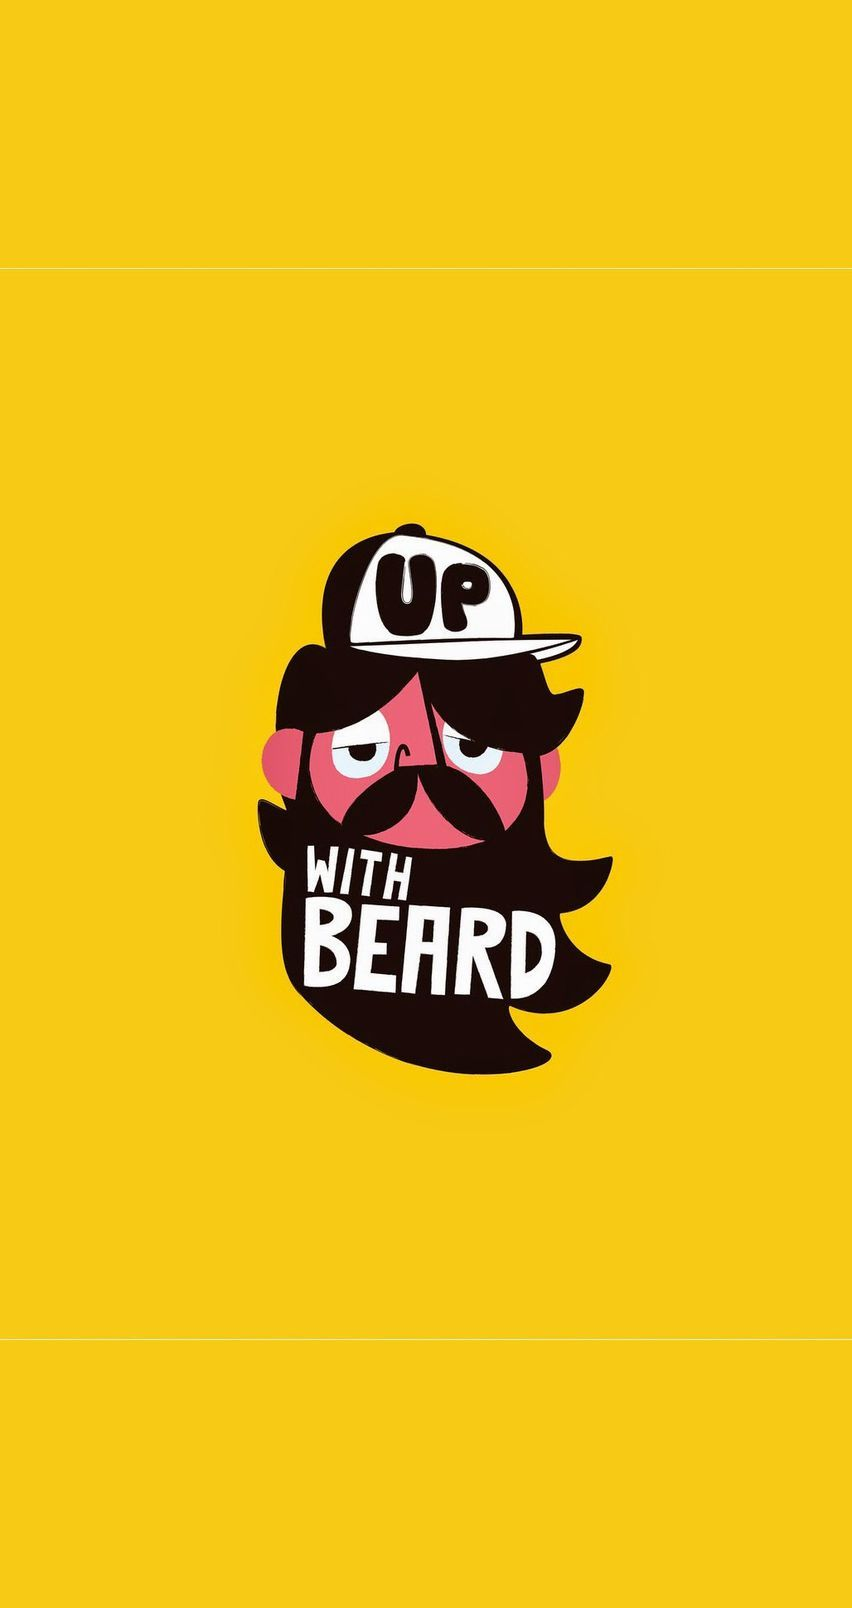 Up With Beard Tap Image For More Cartoon Wallpapers Mobile9 Funny Cute Wallpaper For Iphone 4 4 With Images Funny Iphone Wallpaper Beard Wallpaper Funny Wallpapers